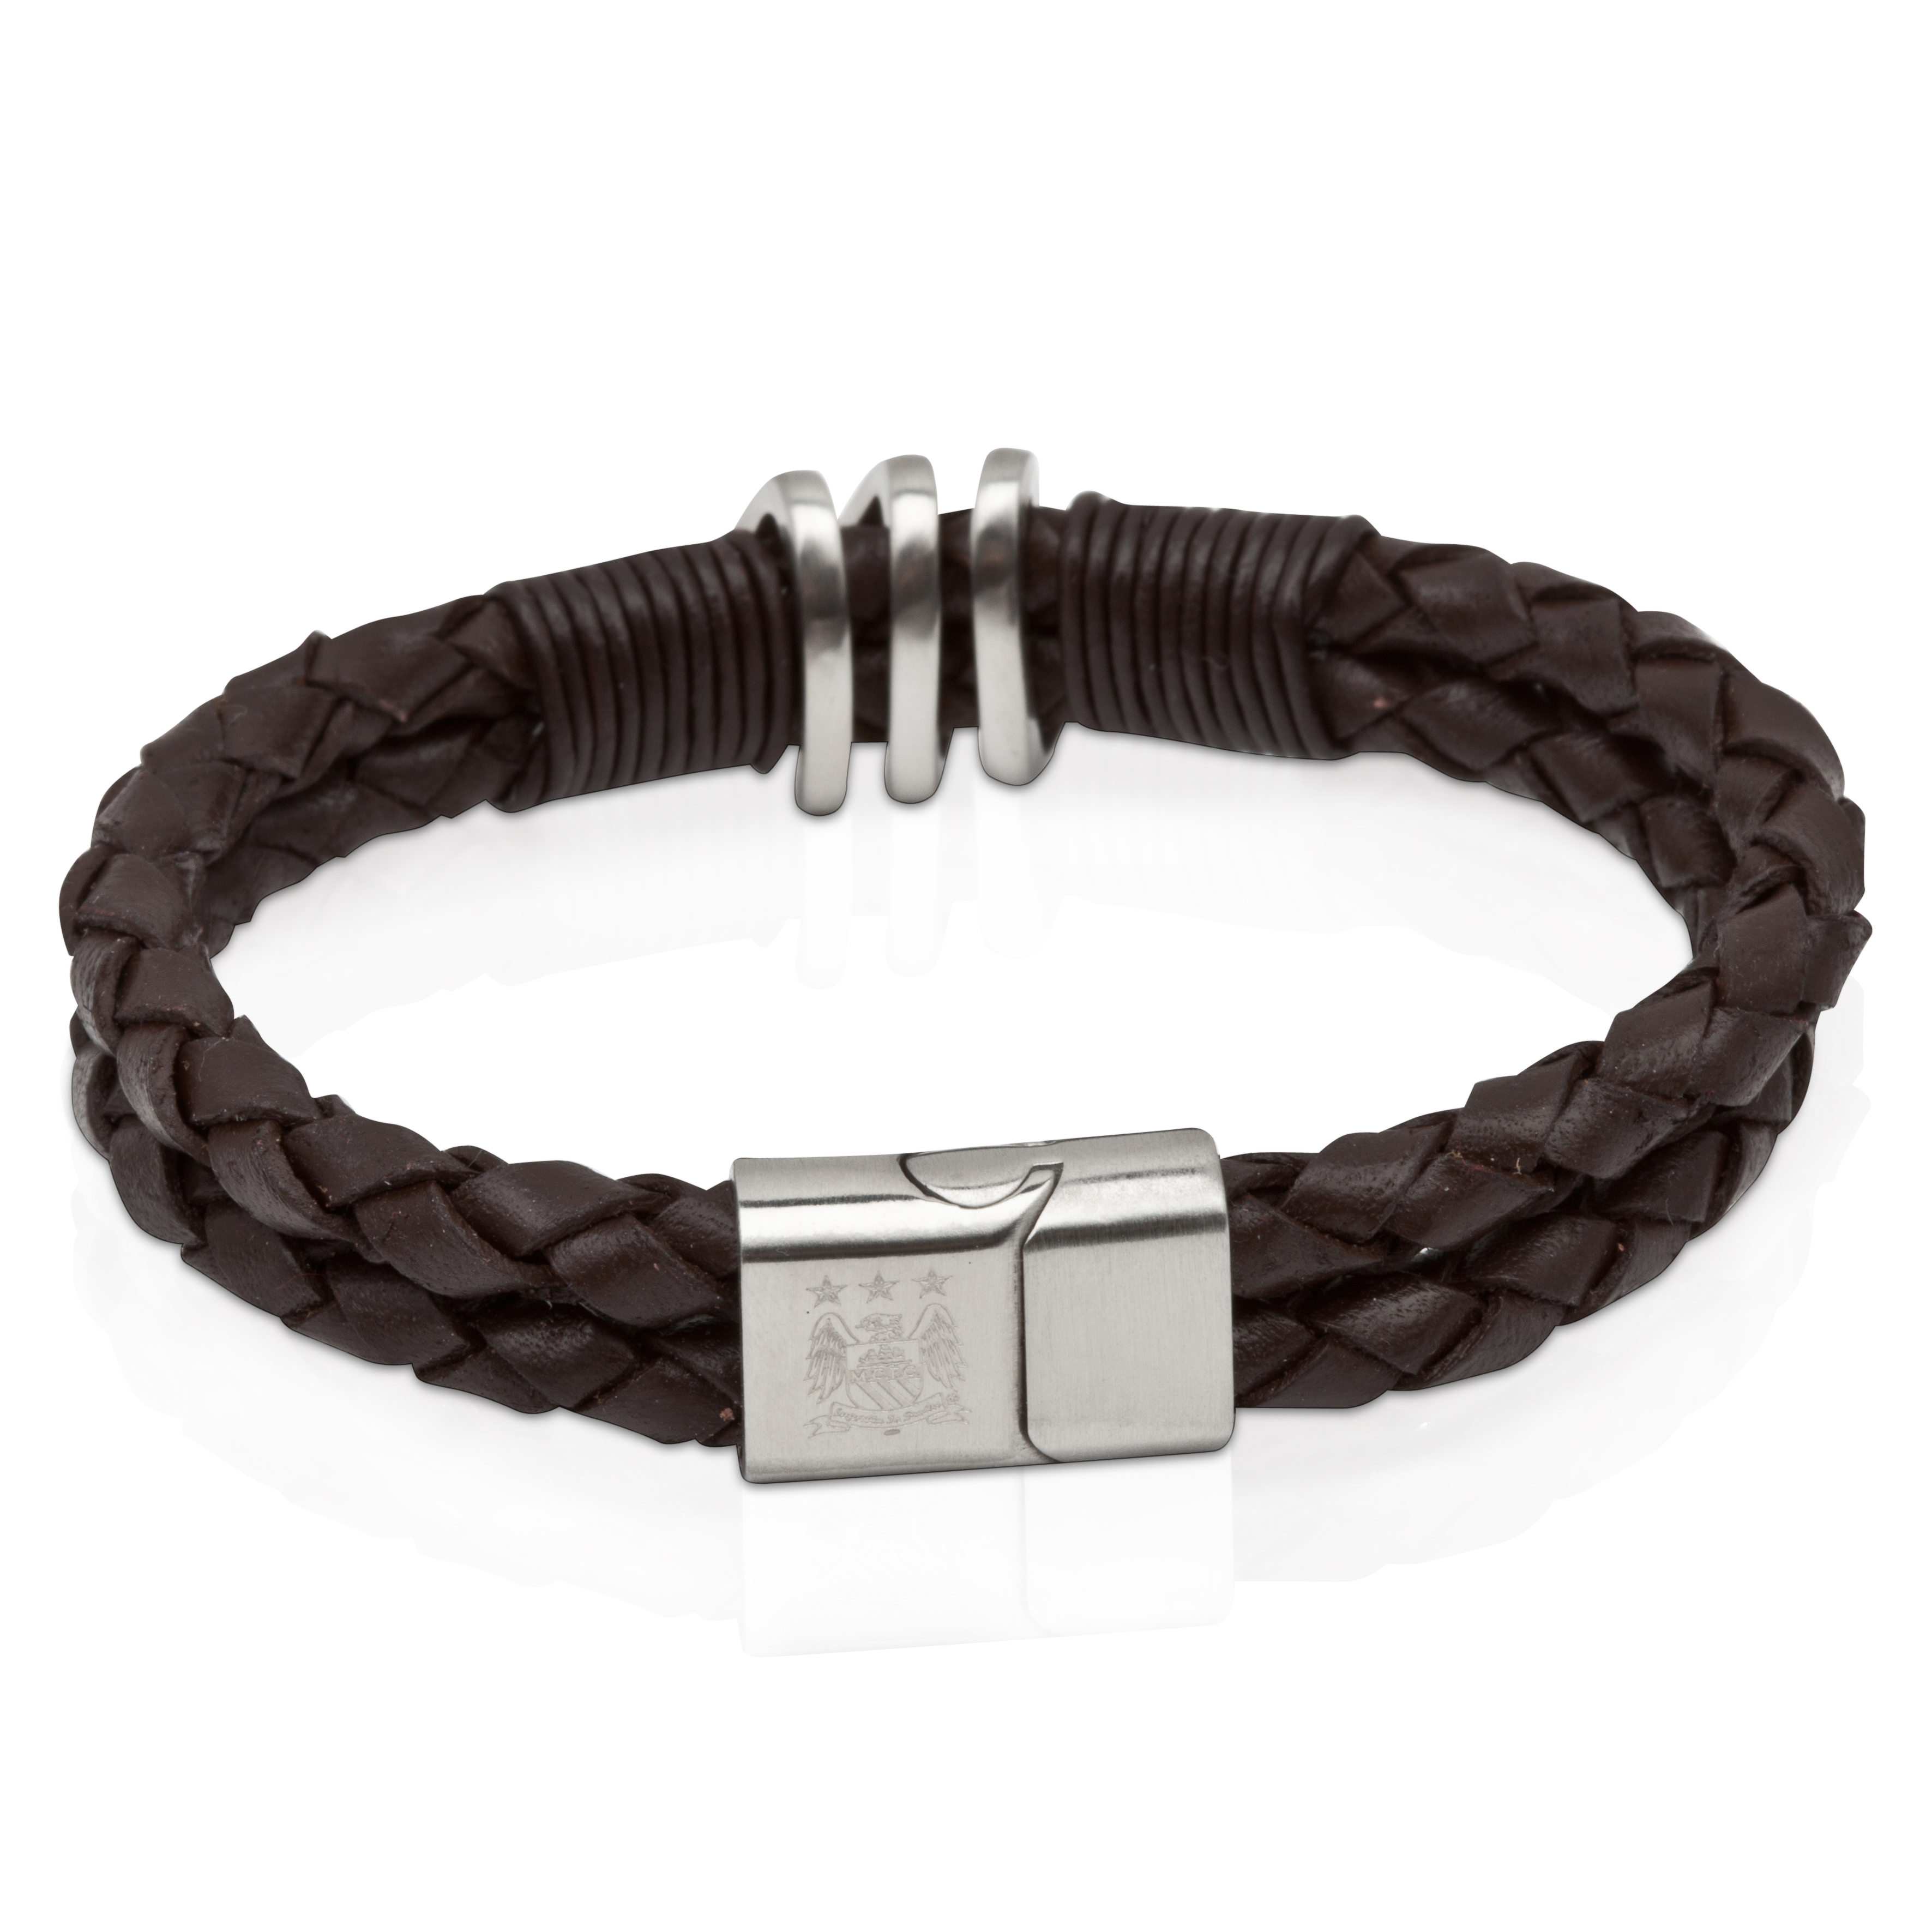 Manchester City Leather Platted & Stainless Steel Bracelet